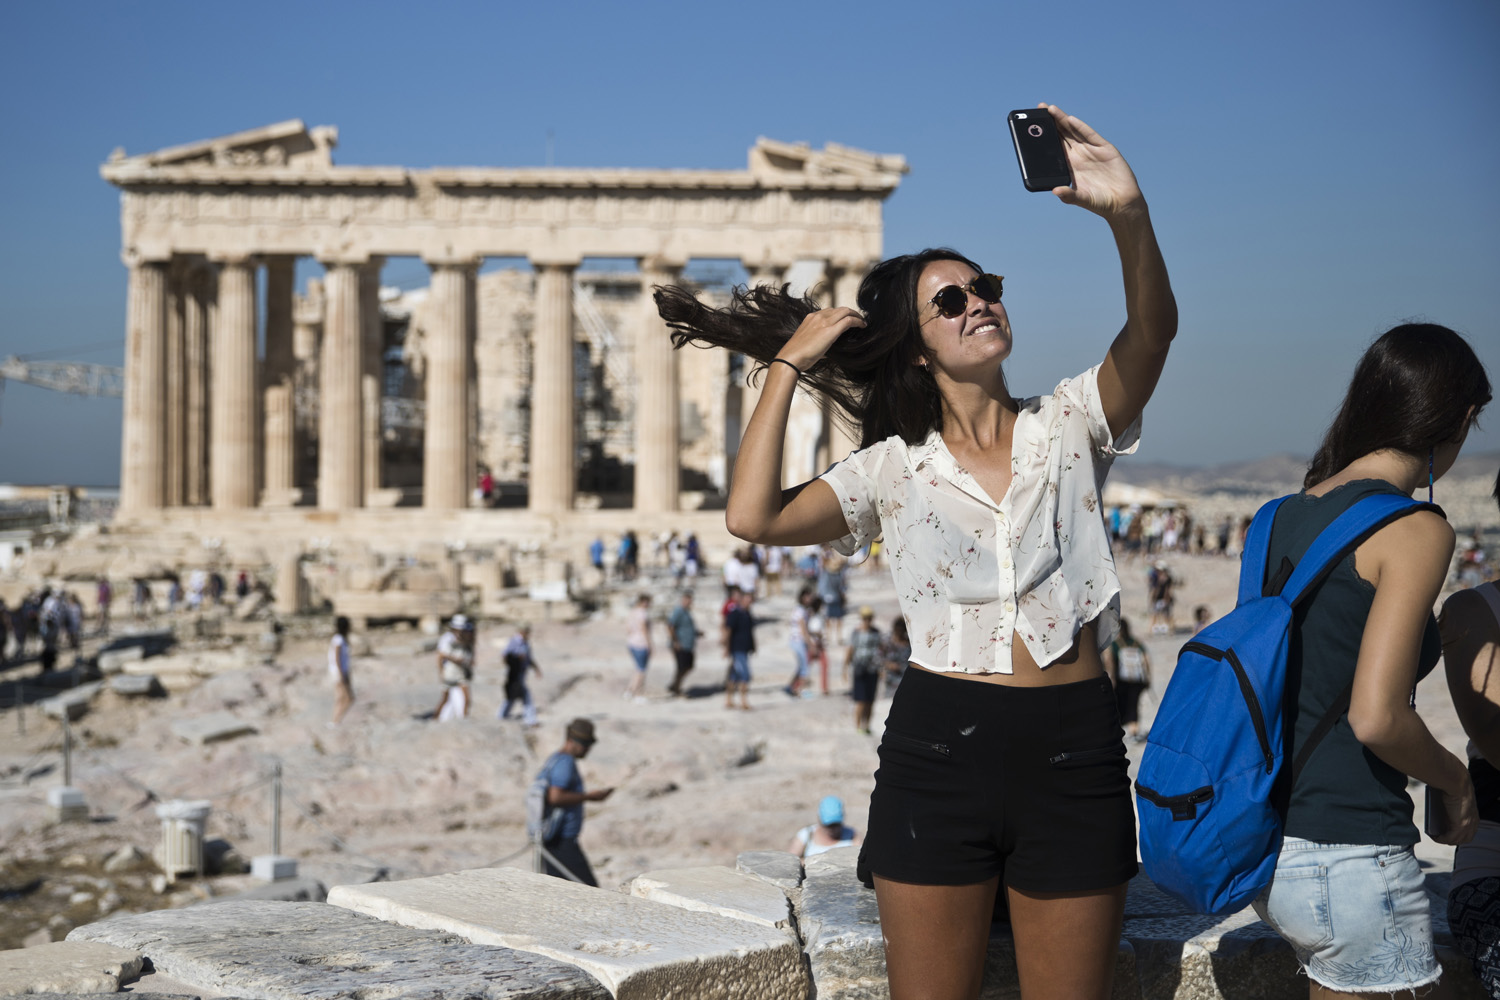 A tourist takes a selfie in front of the the ruins of the fifth century B.C. Parthenon temple at the Acropolis hill, on Friday, Sept. 1, 2017. (AP Photo/Petros Giannakouris)